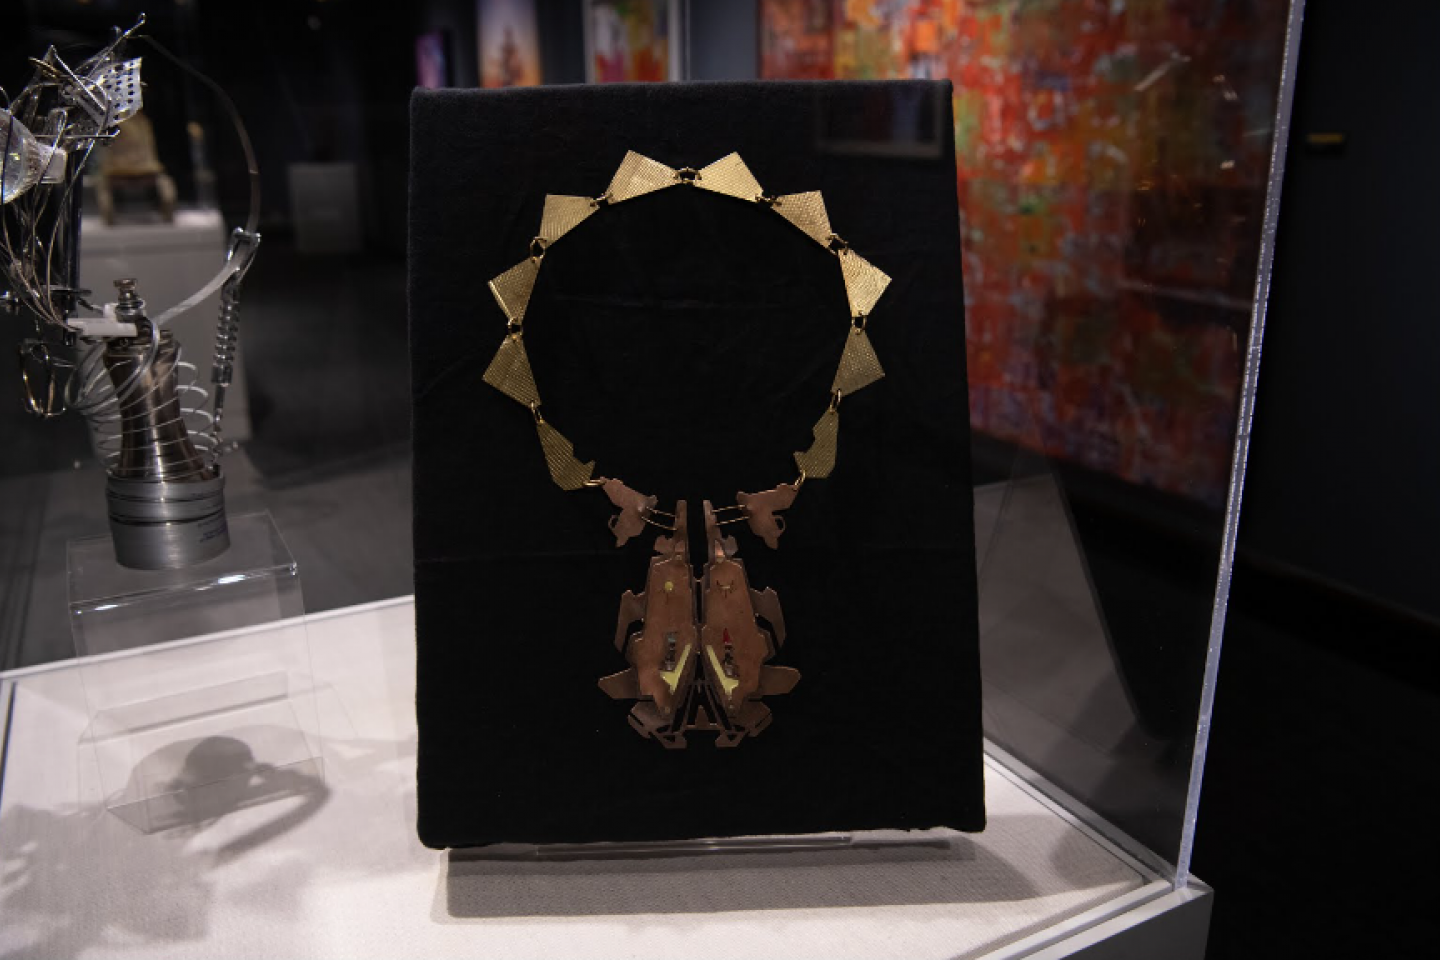 A necklace is displayed in a museum exhibit.